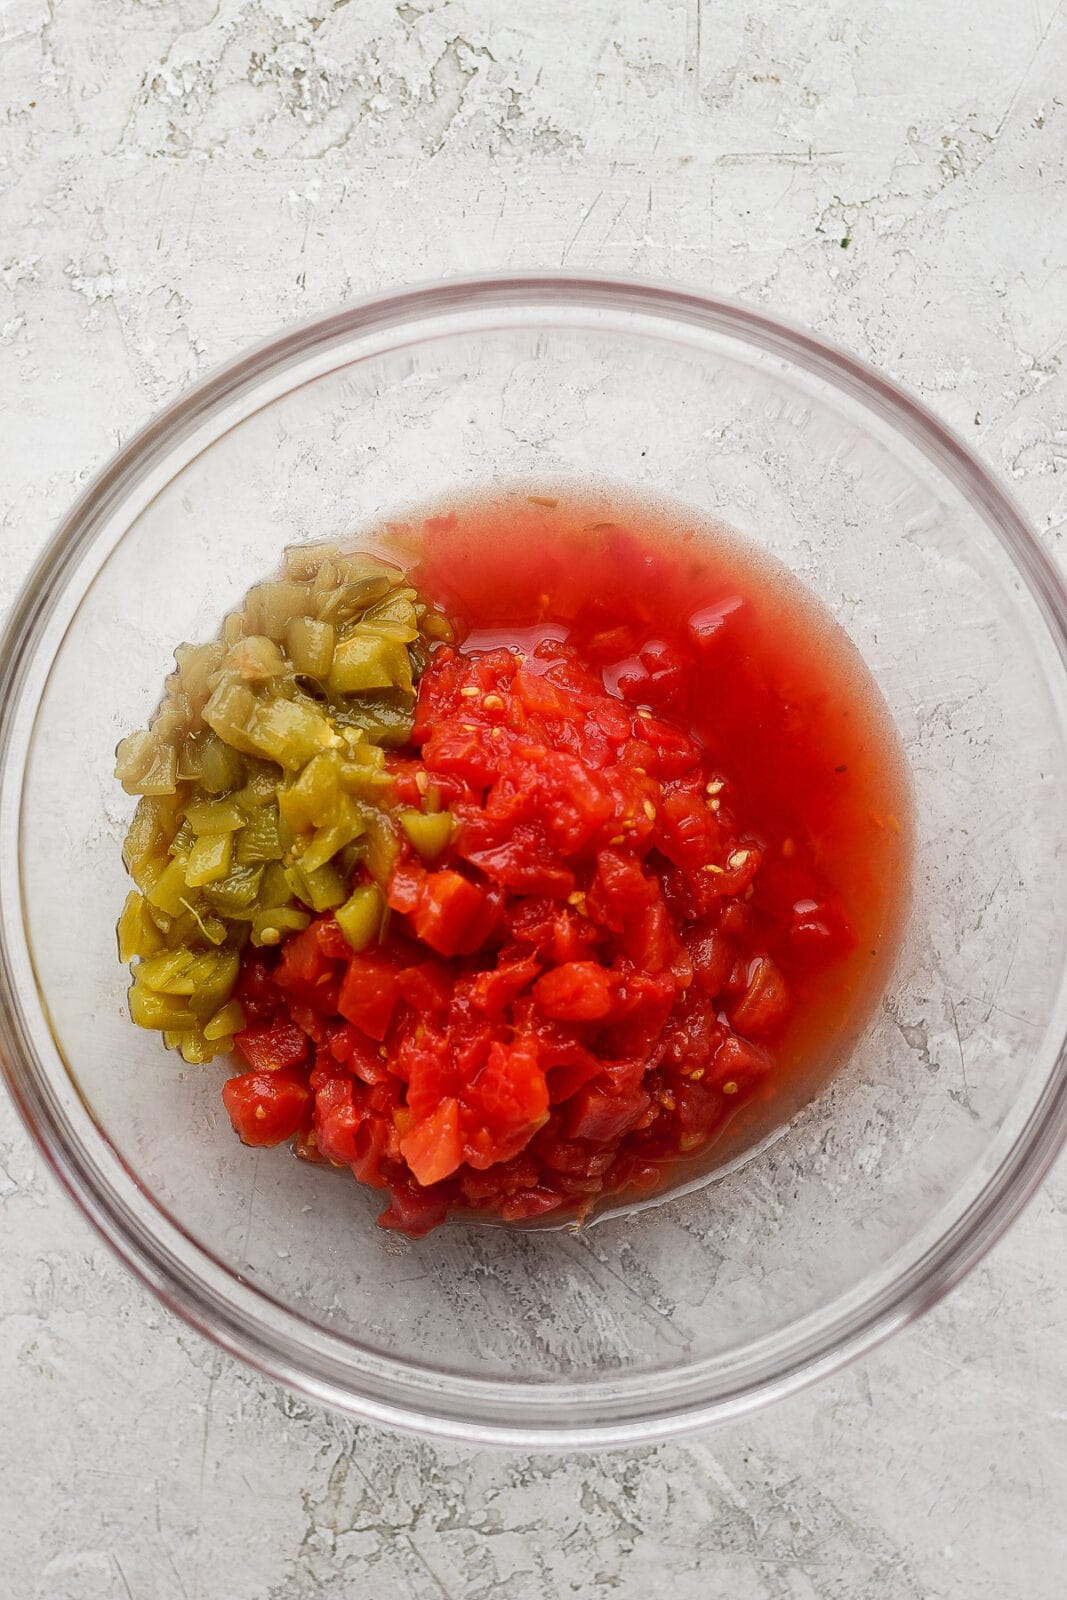 Bowl of tomatoes and green chiles.